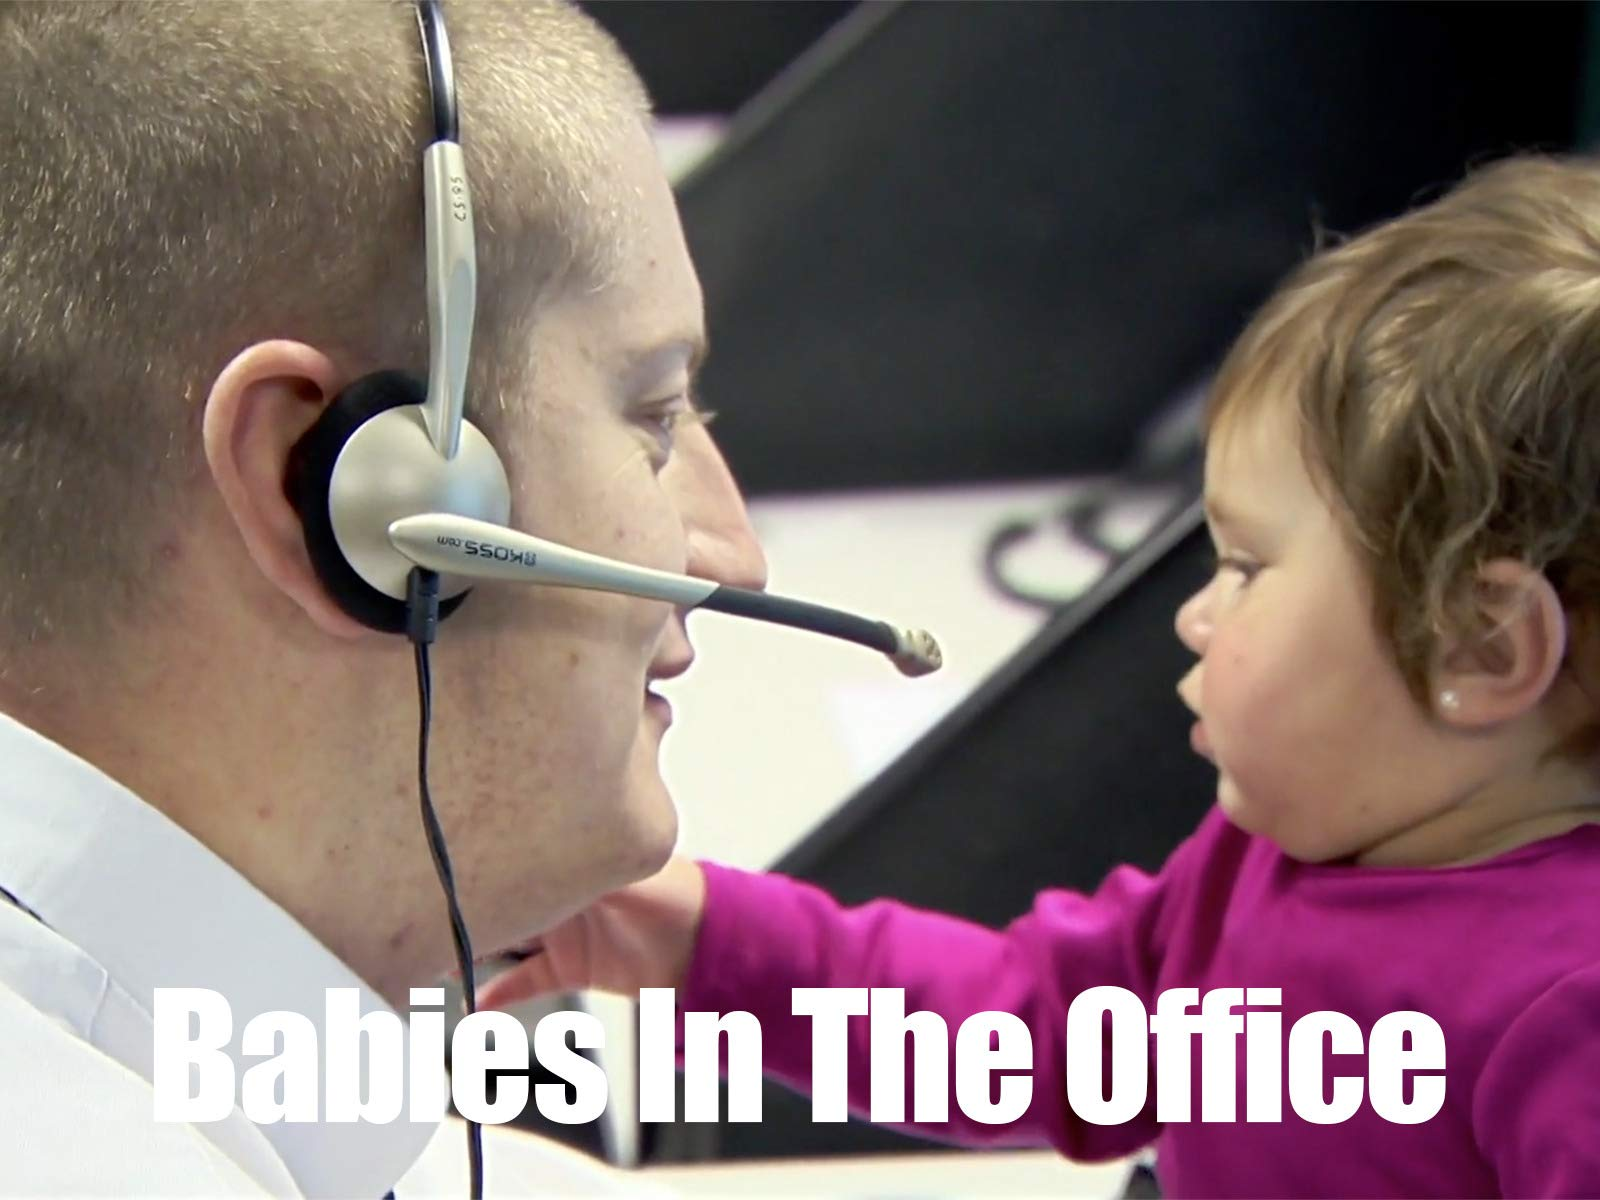 Babies In The Office on Amazon Prime Instant Video UK